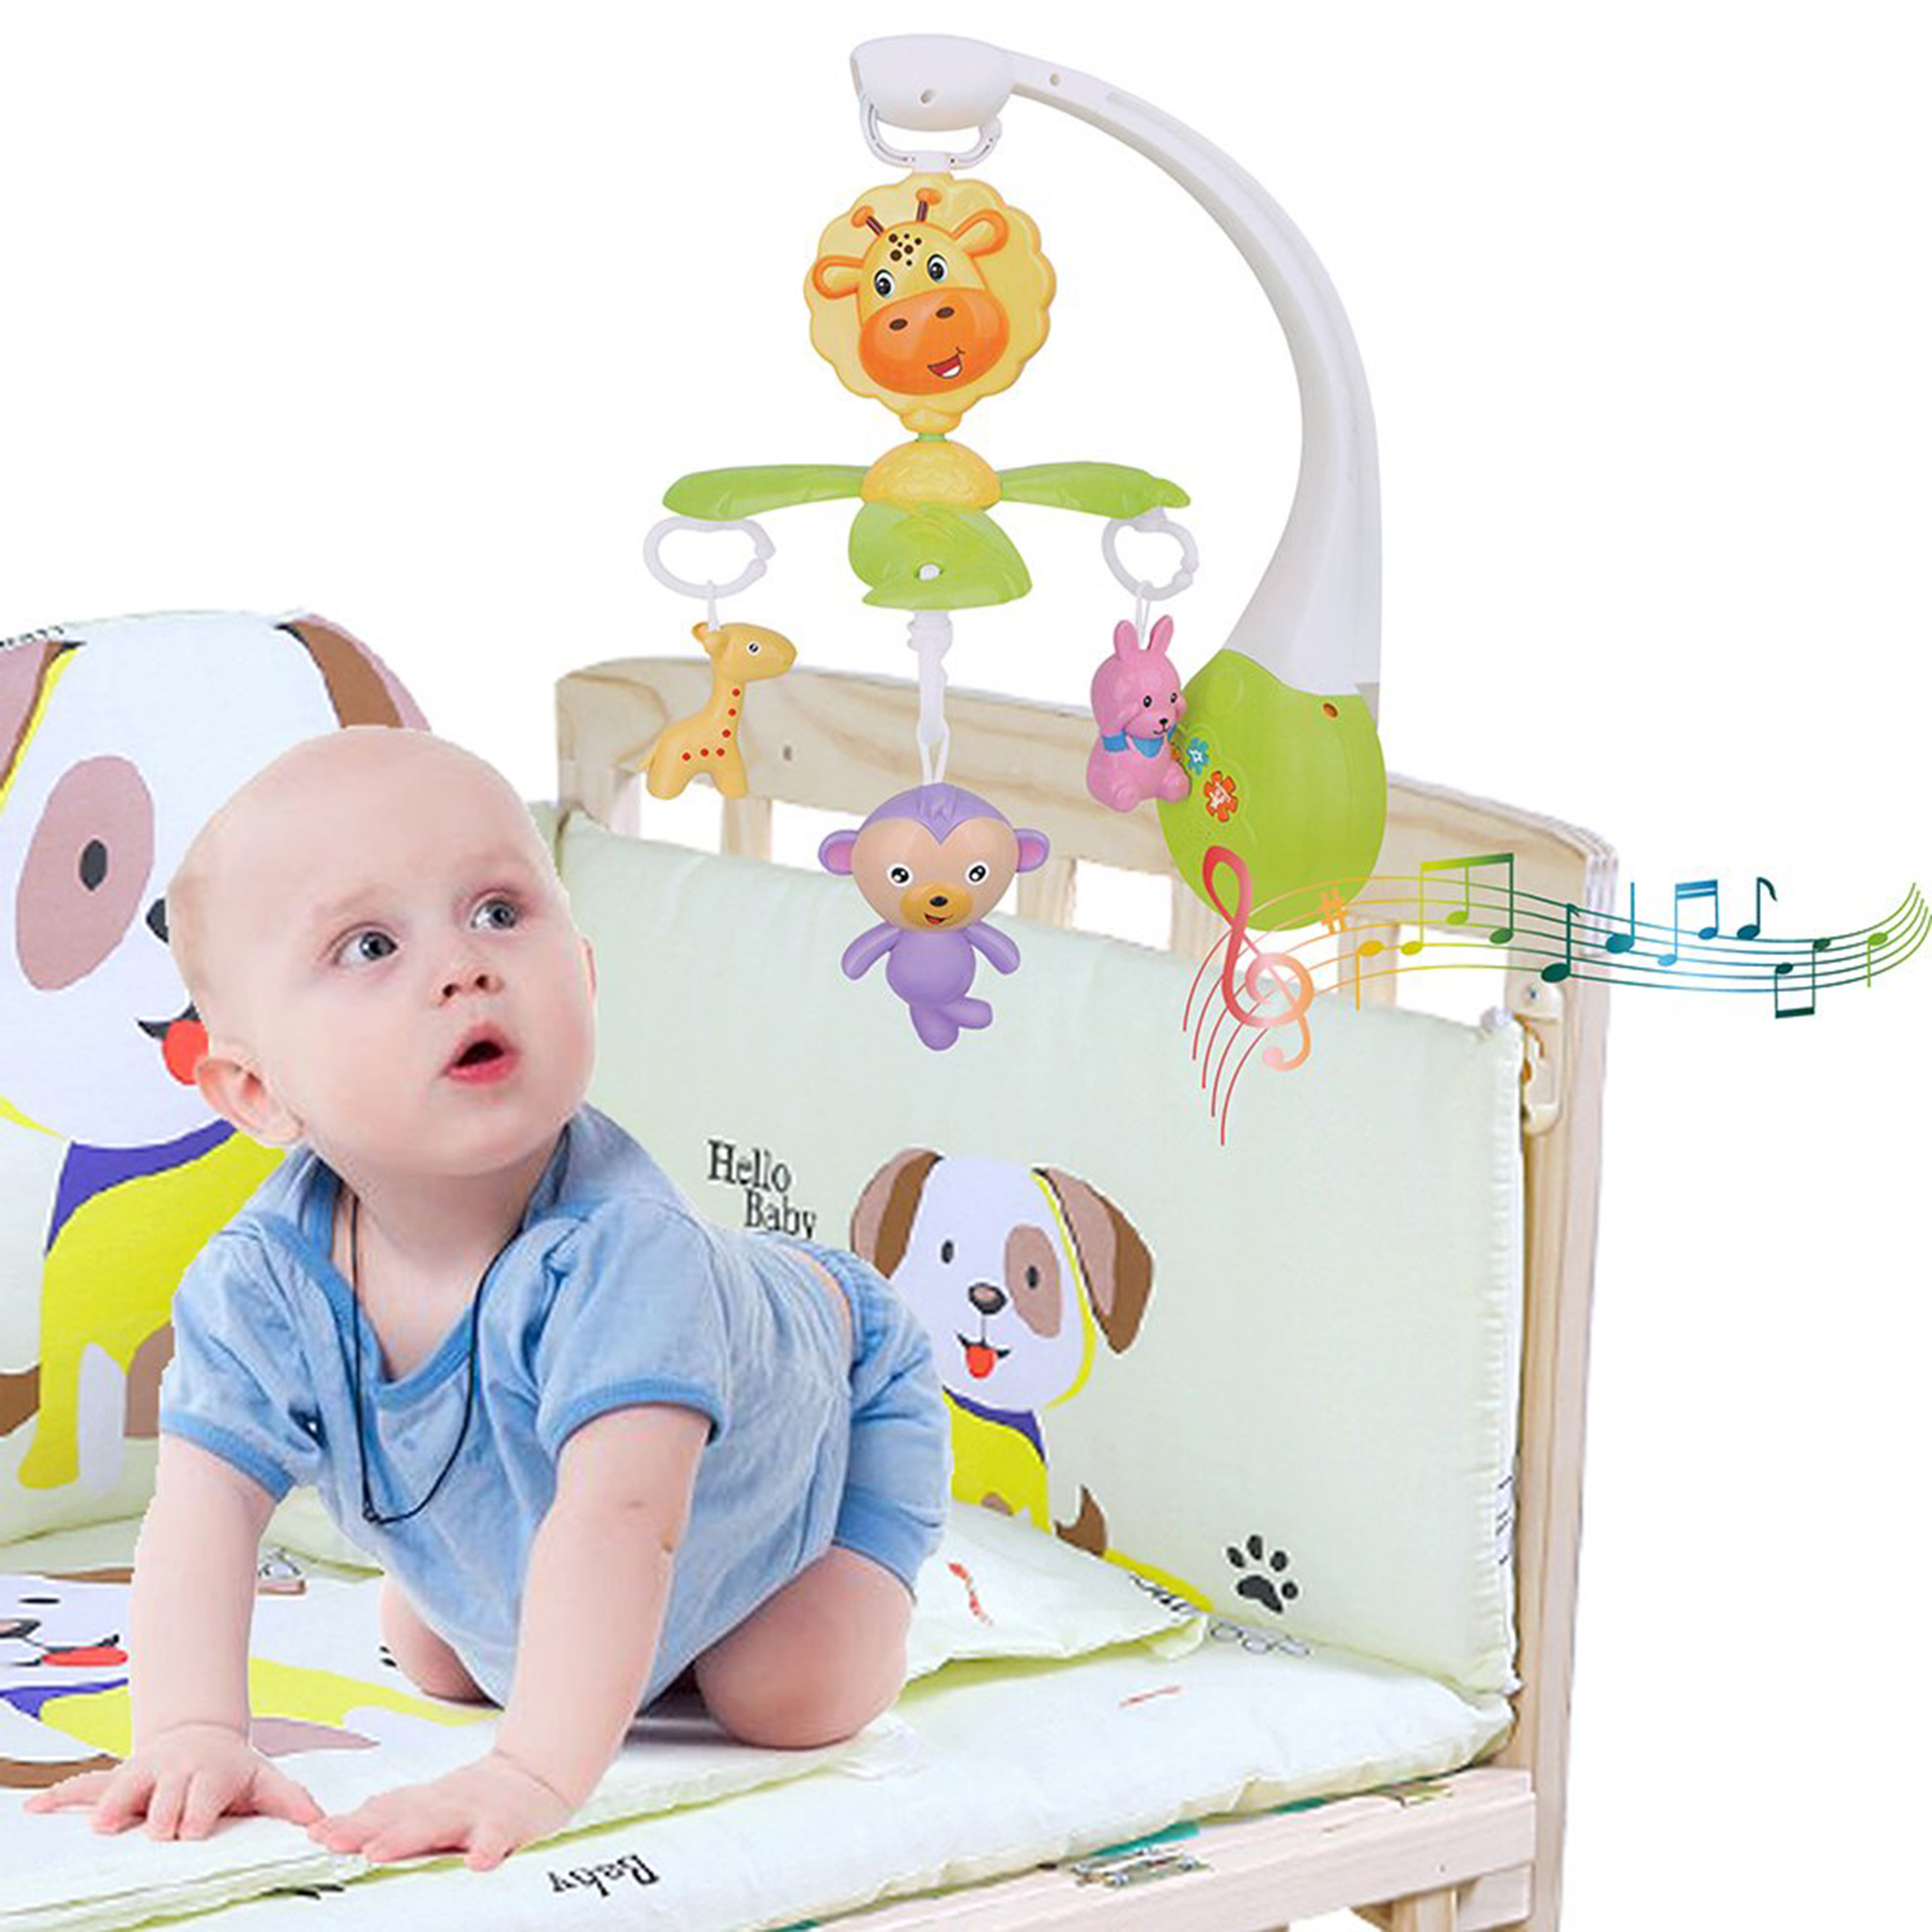 KARMAS PRODUCT Infant Baby Mobile Crib Bed Bell DIY Music Box Kid Toys Gift by KARMAS PRODUCT